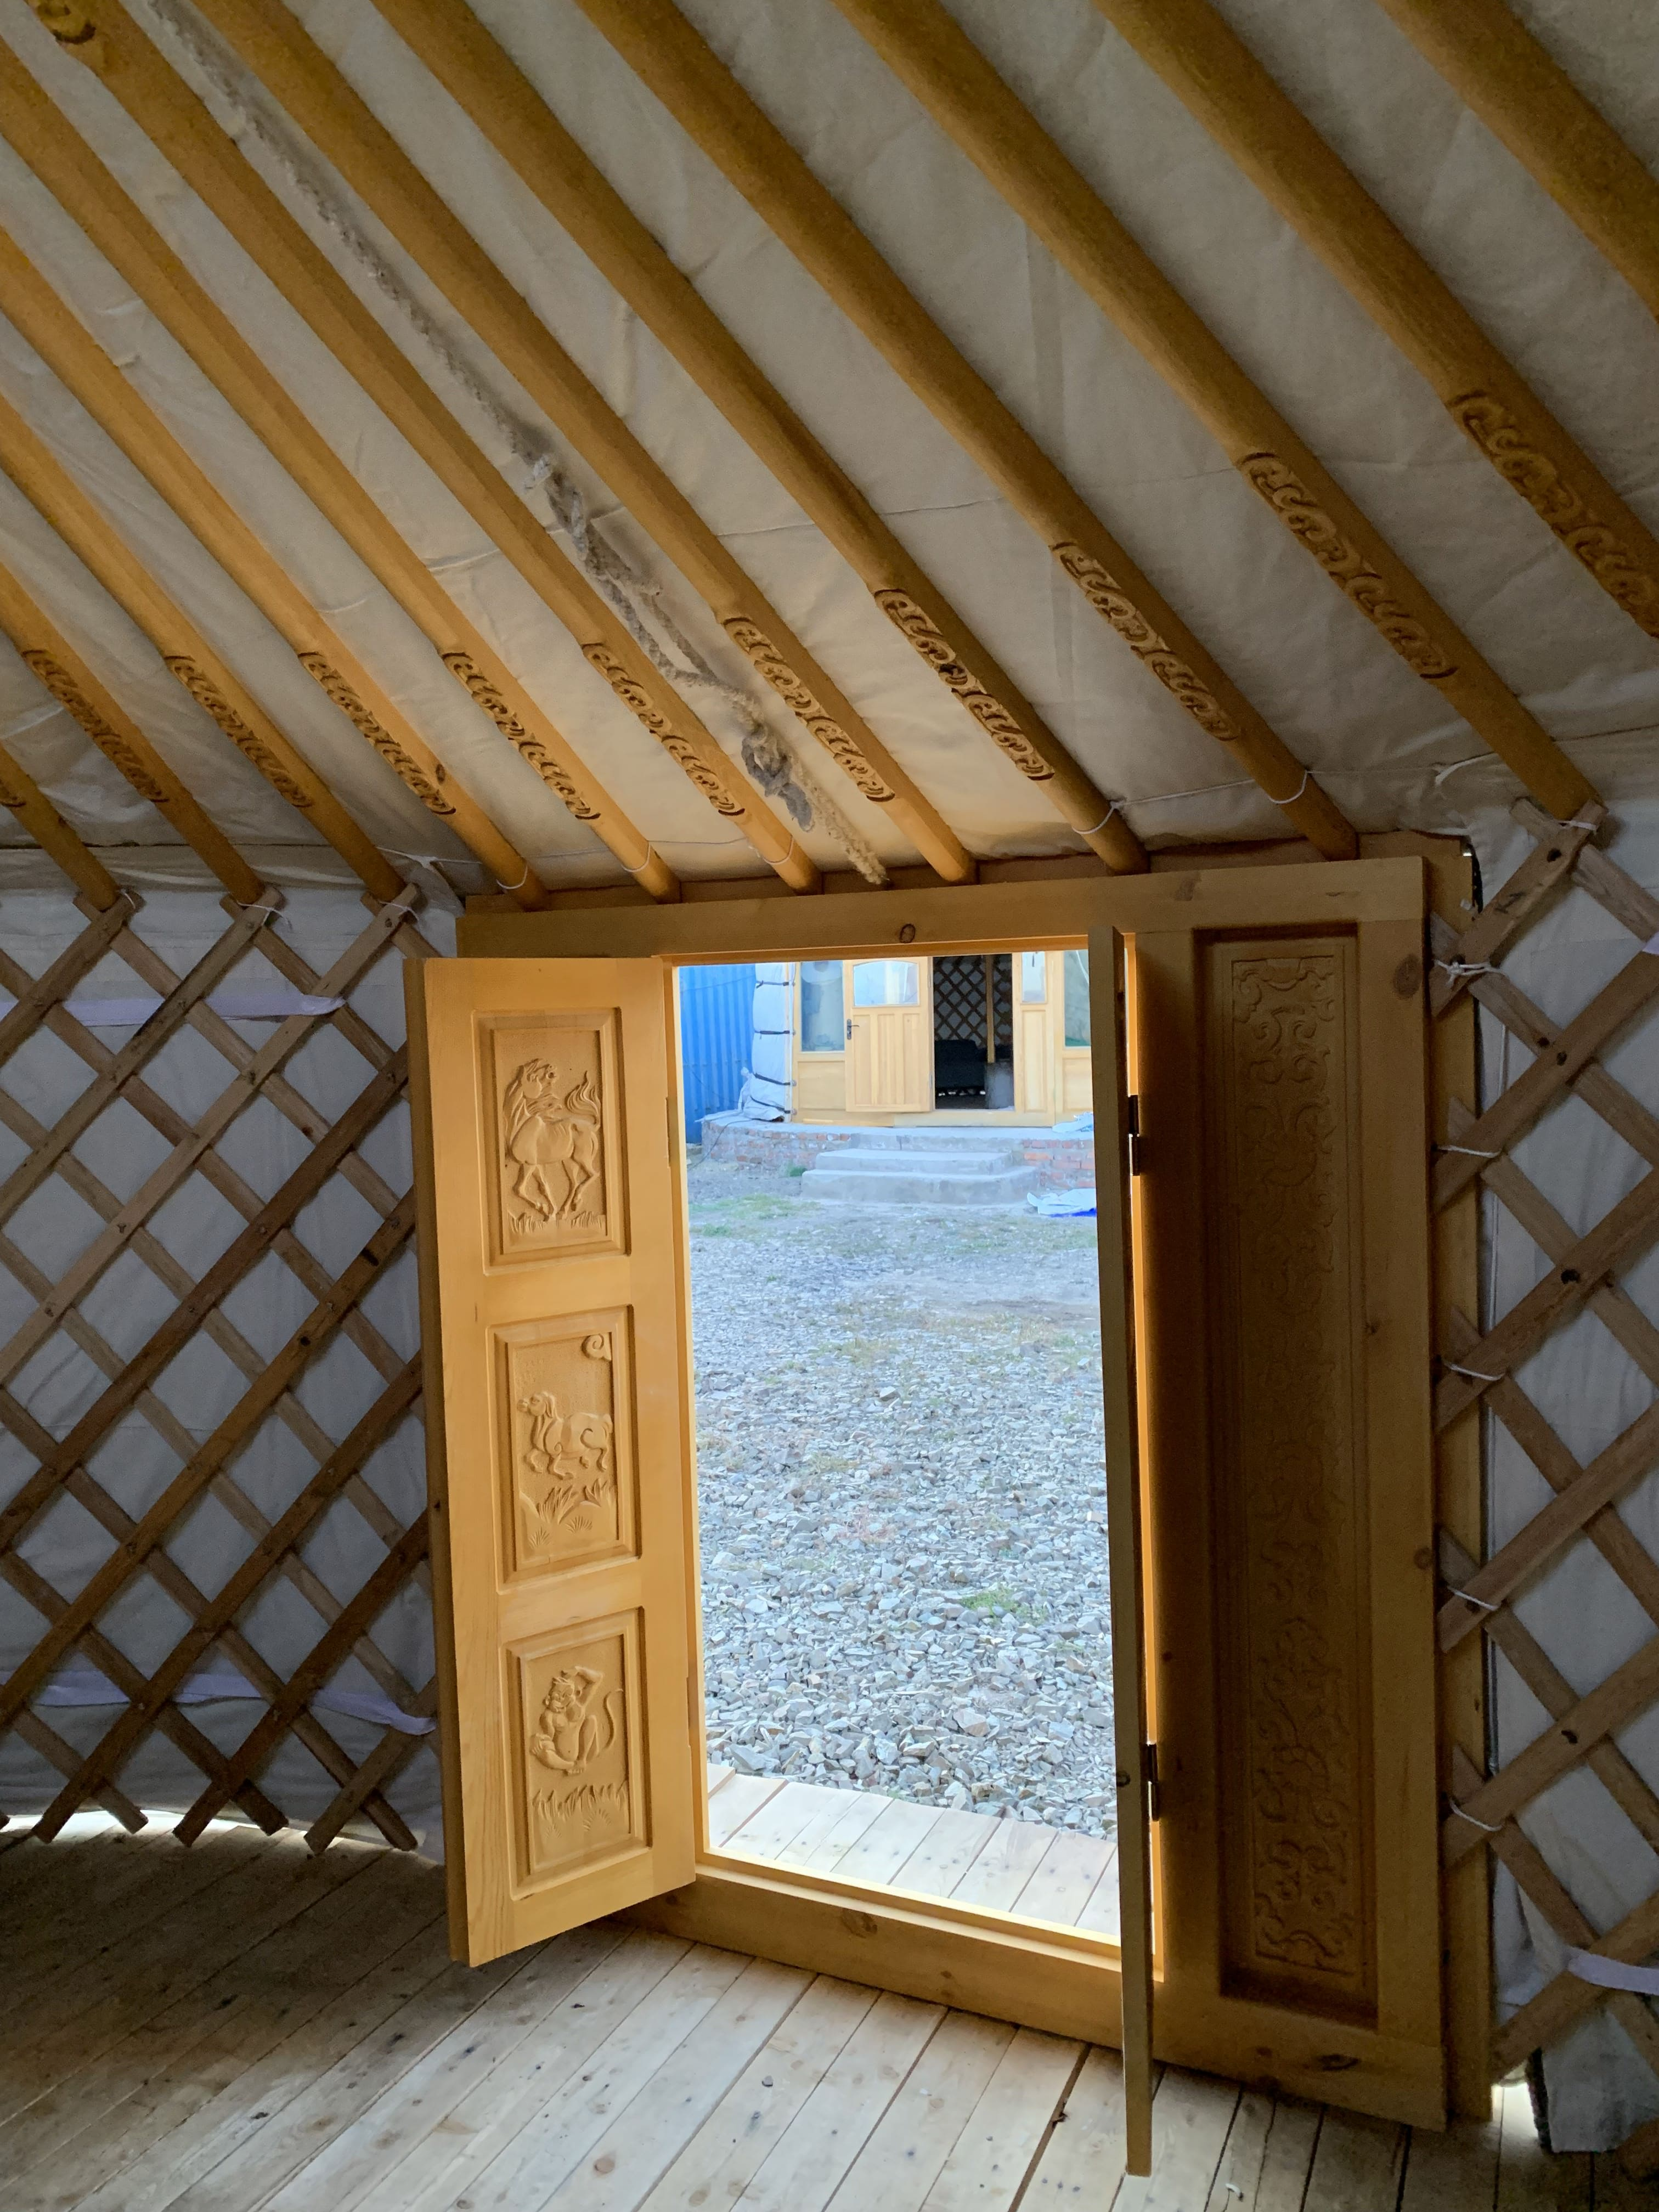 Inside a GroovyYurt Yurt looking out through the door